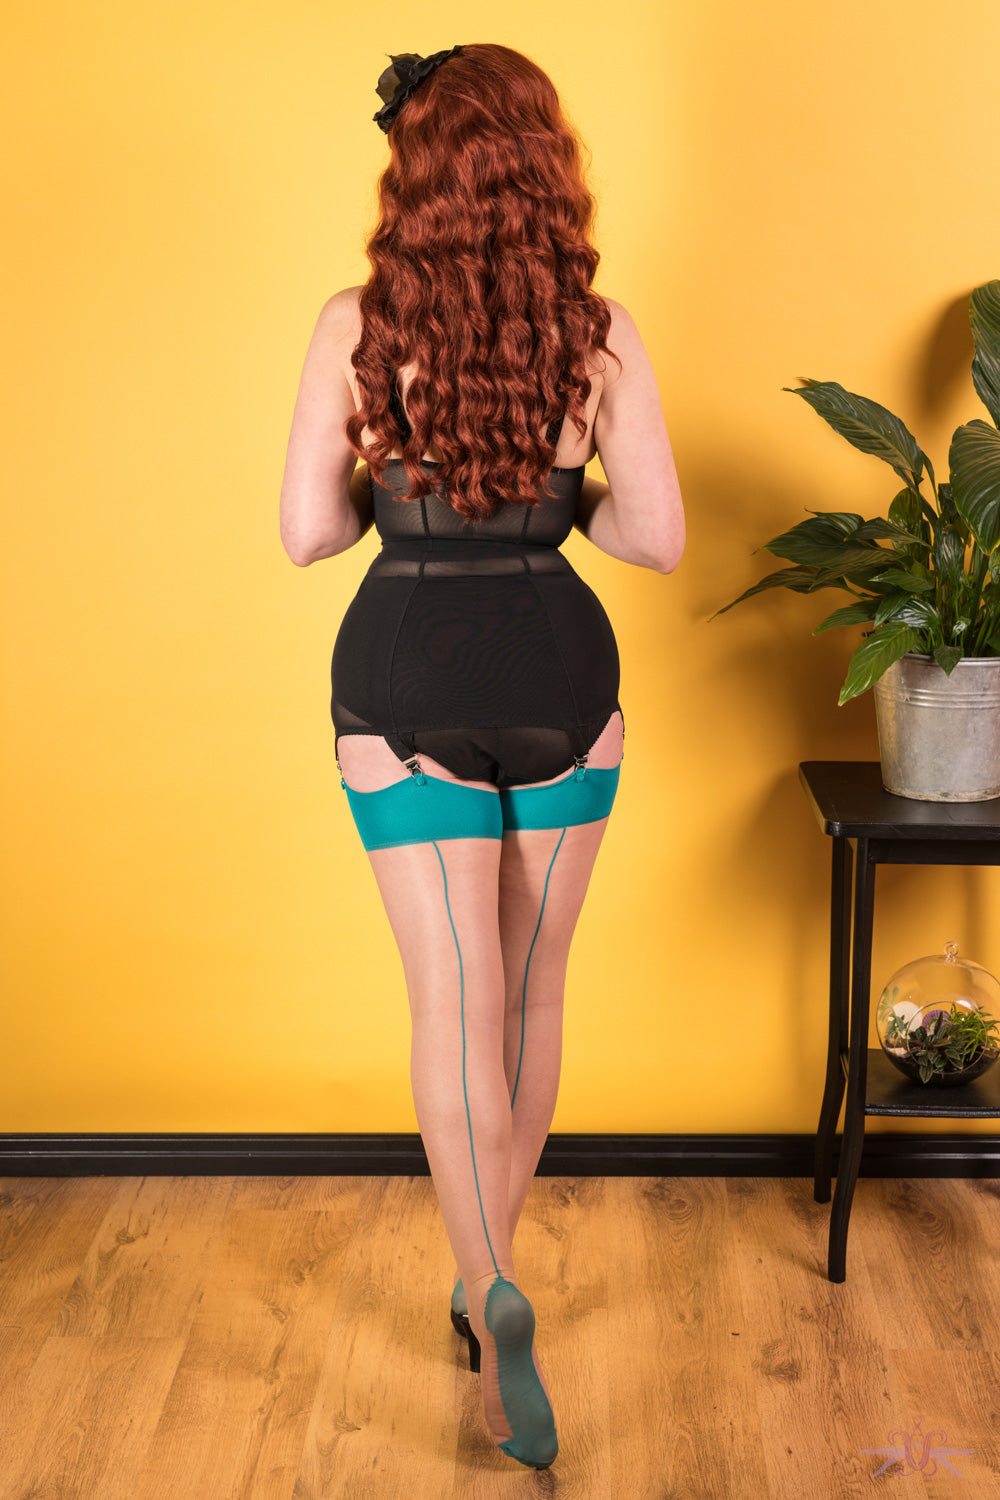 What Katie Did Contrast Nude/Teal Seamed Stockings - Mayfair Stockings